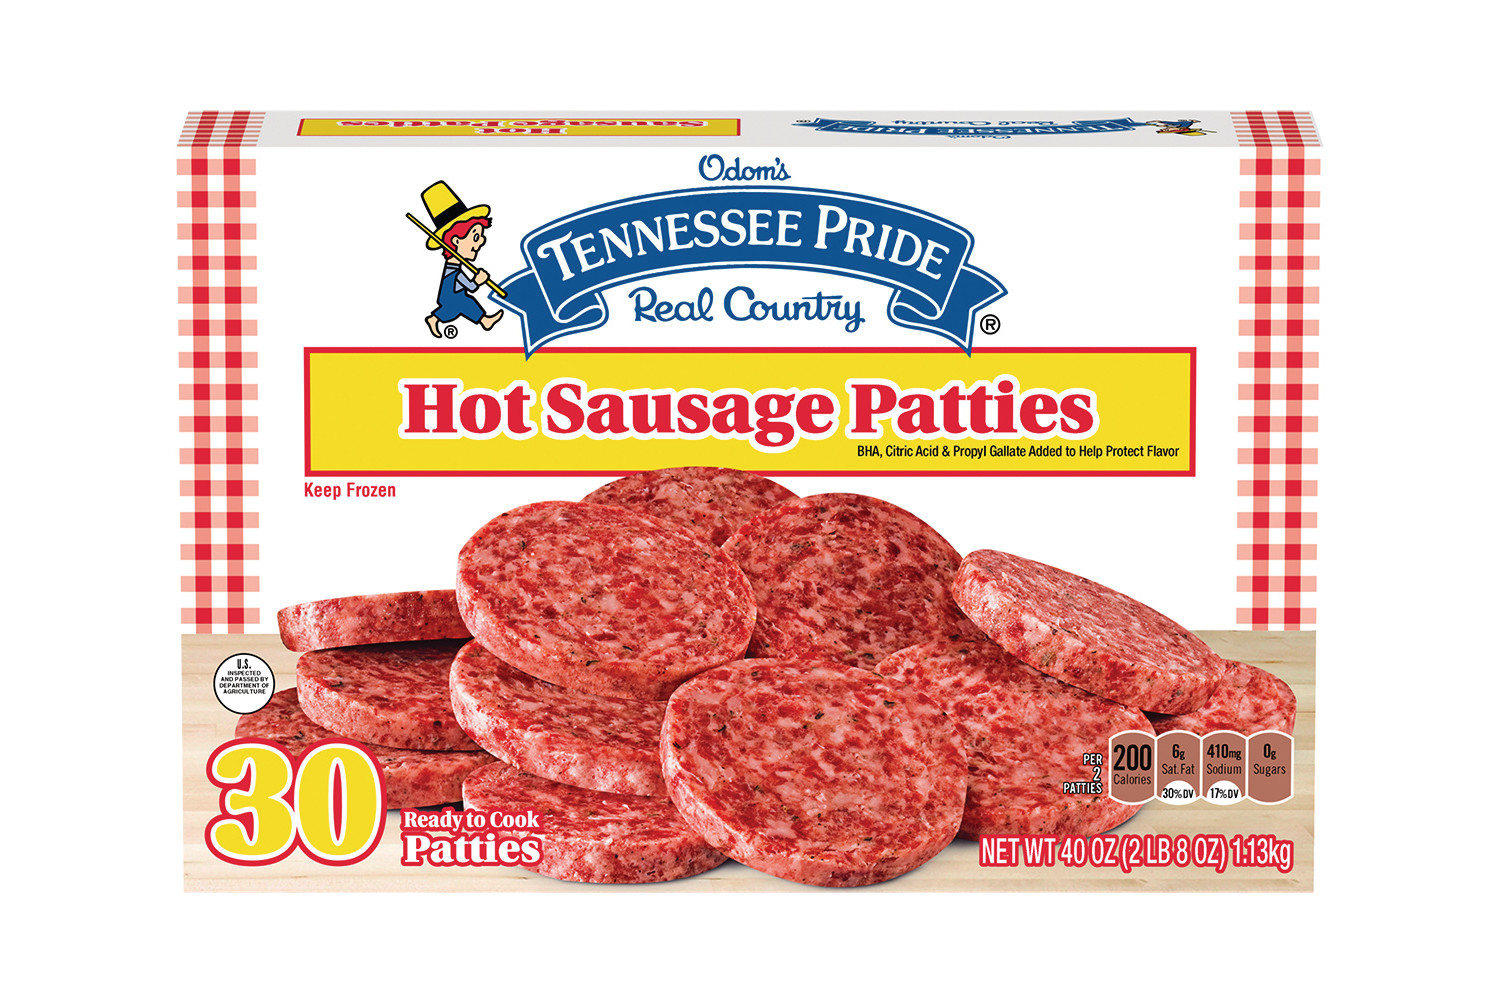 ODOMS TENNESSEE PRIDE Hot Sausage Patties